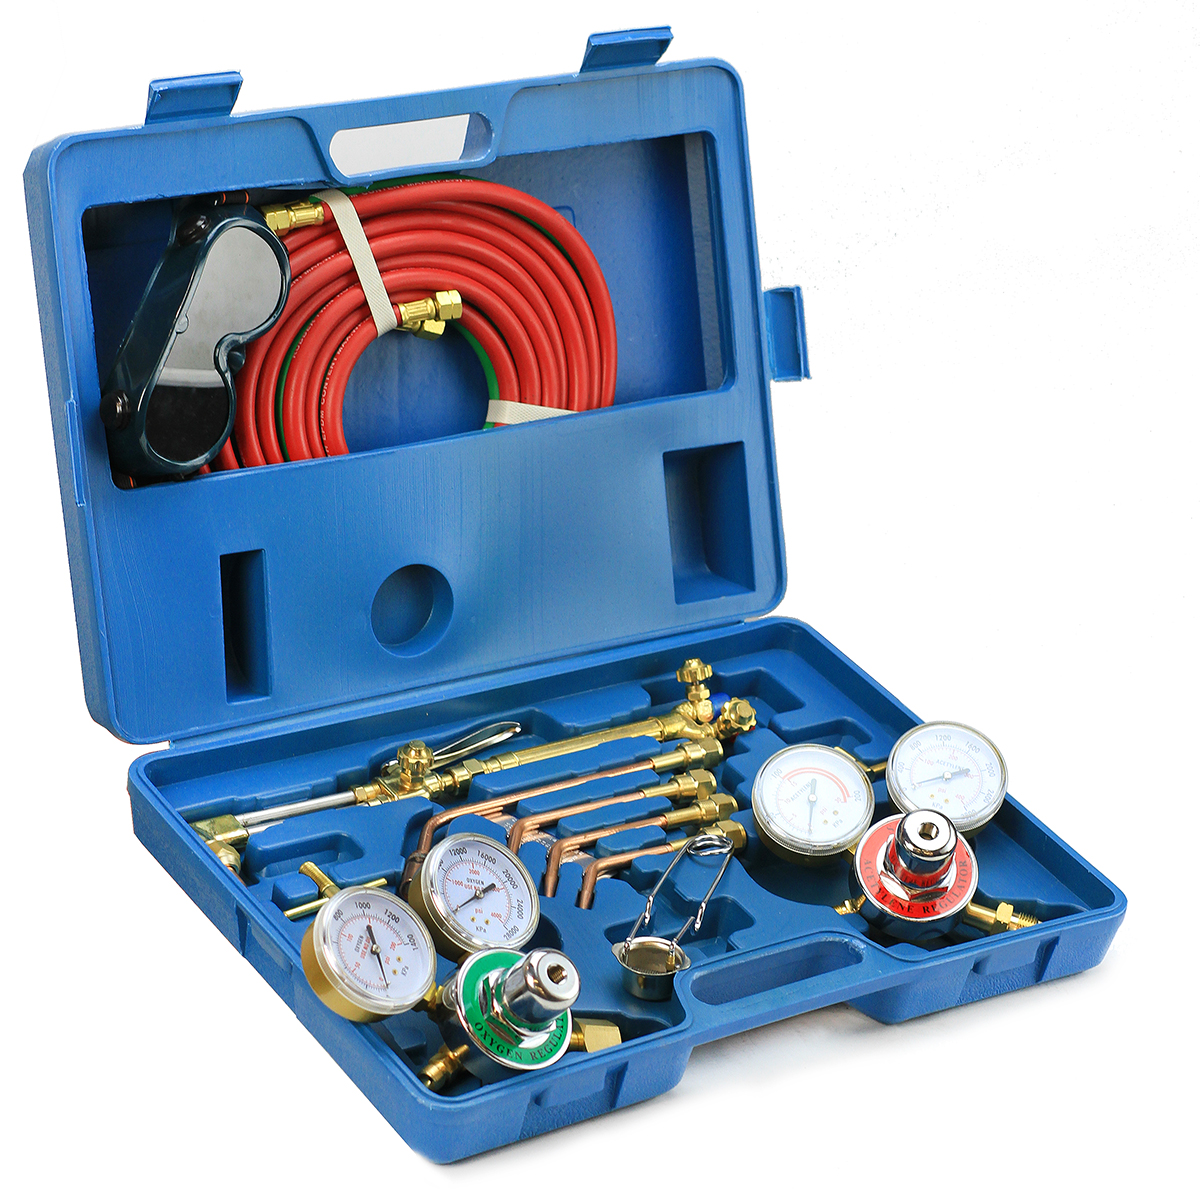 Stark Oxygen Acetylene Welding Cutting Torch Tool Kit with Regulator & Twin Hose Carrying Case